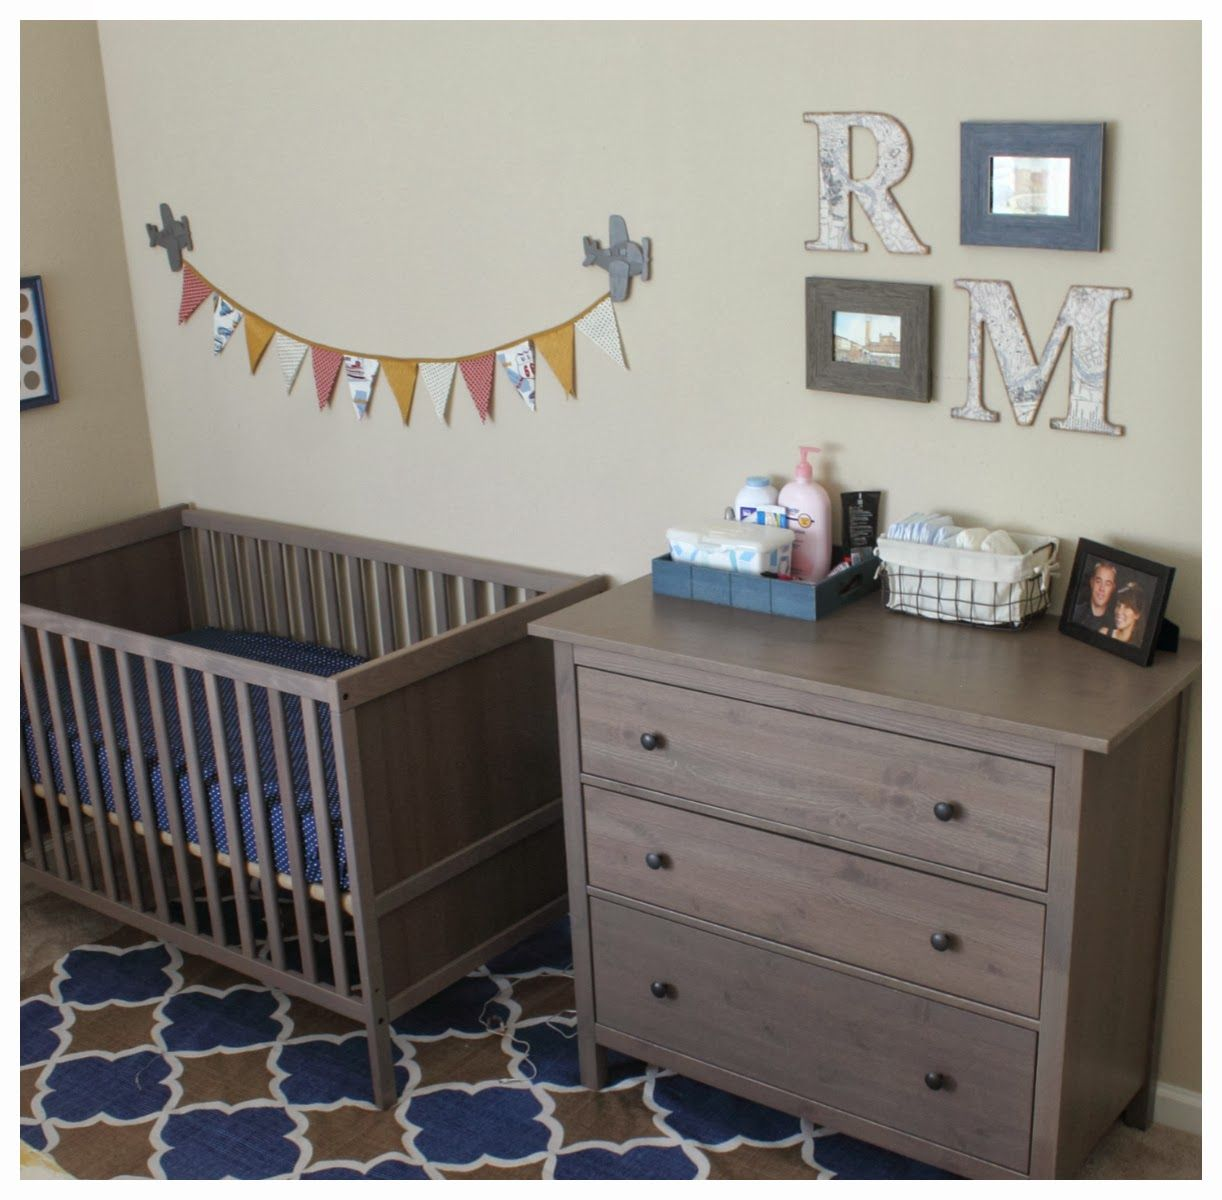 Baby cribs with matching dresser - Ikea Sundvik Crib In Grey Brown Hemnes Grey Brown Dresser Map Initials Framed Post Cards